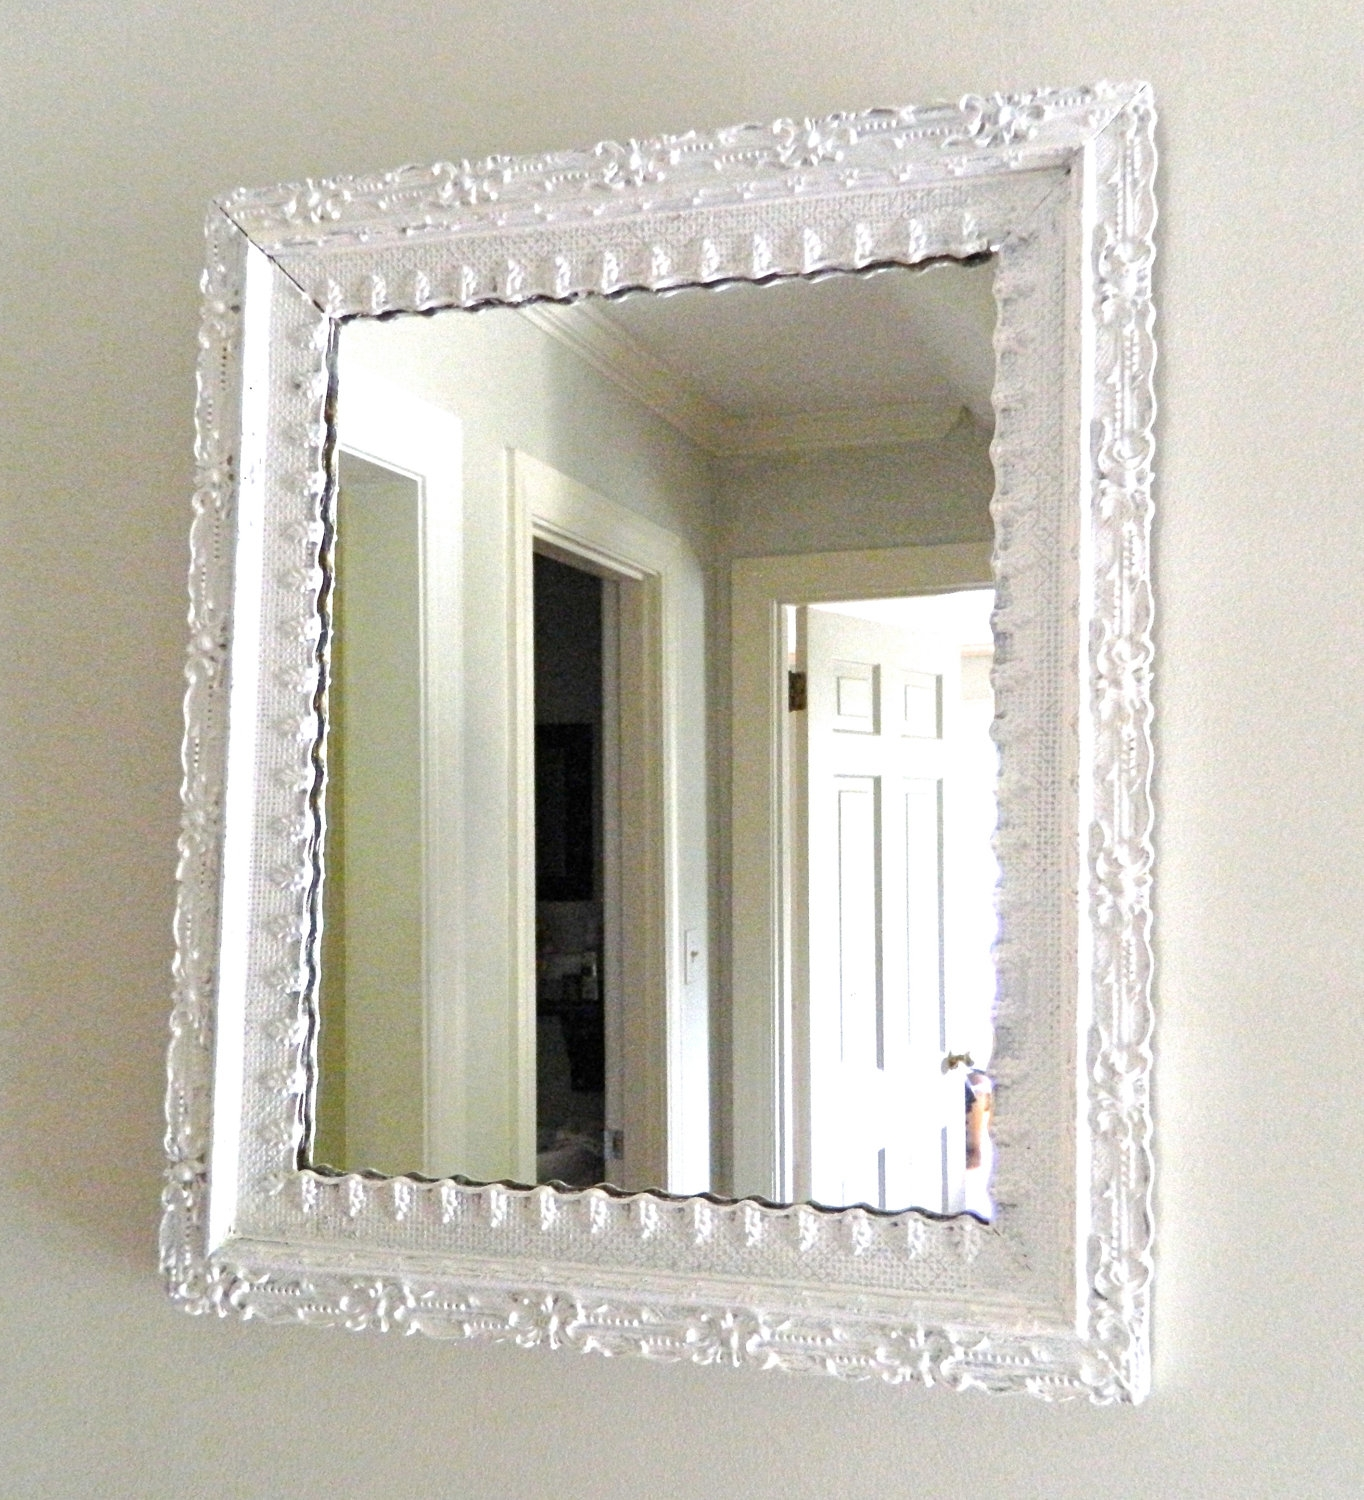 Vintage White Mirror Shab Chic Ornate Wood Frame Pertaining To Vintage White Mirror (Image 14 of 15)